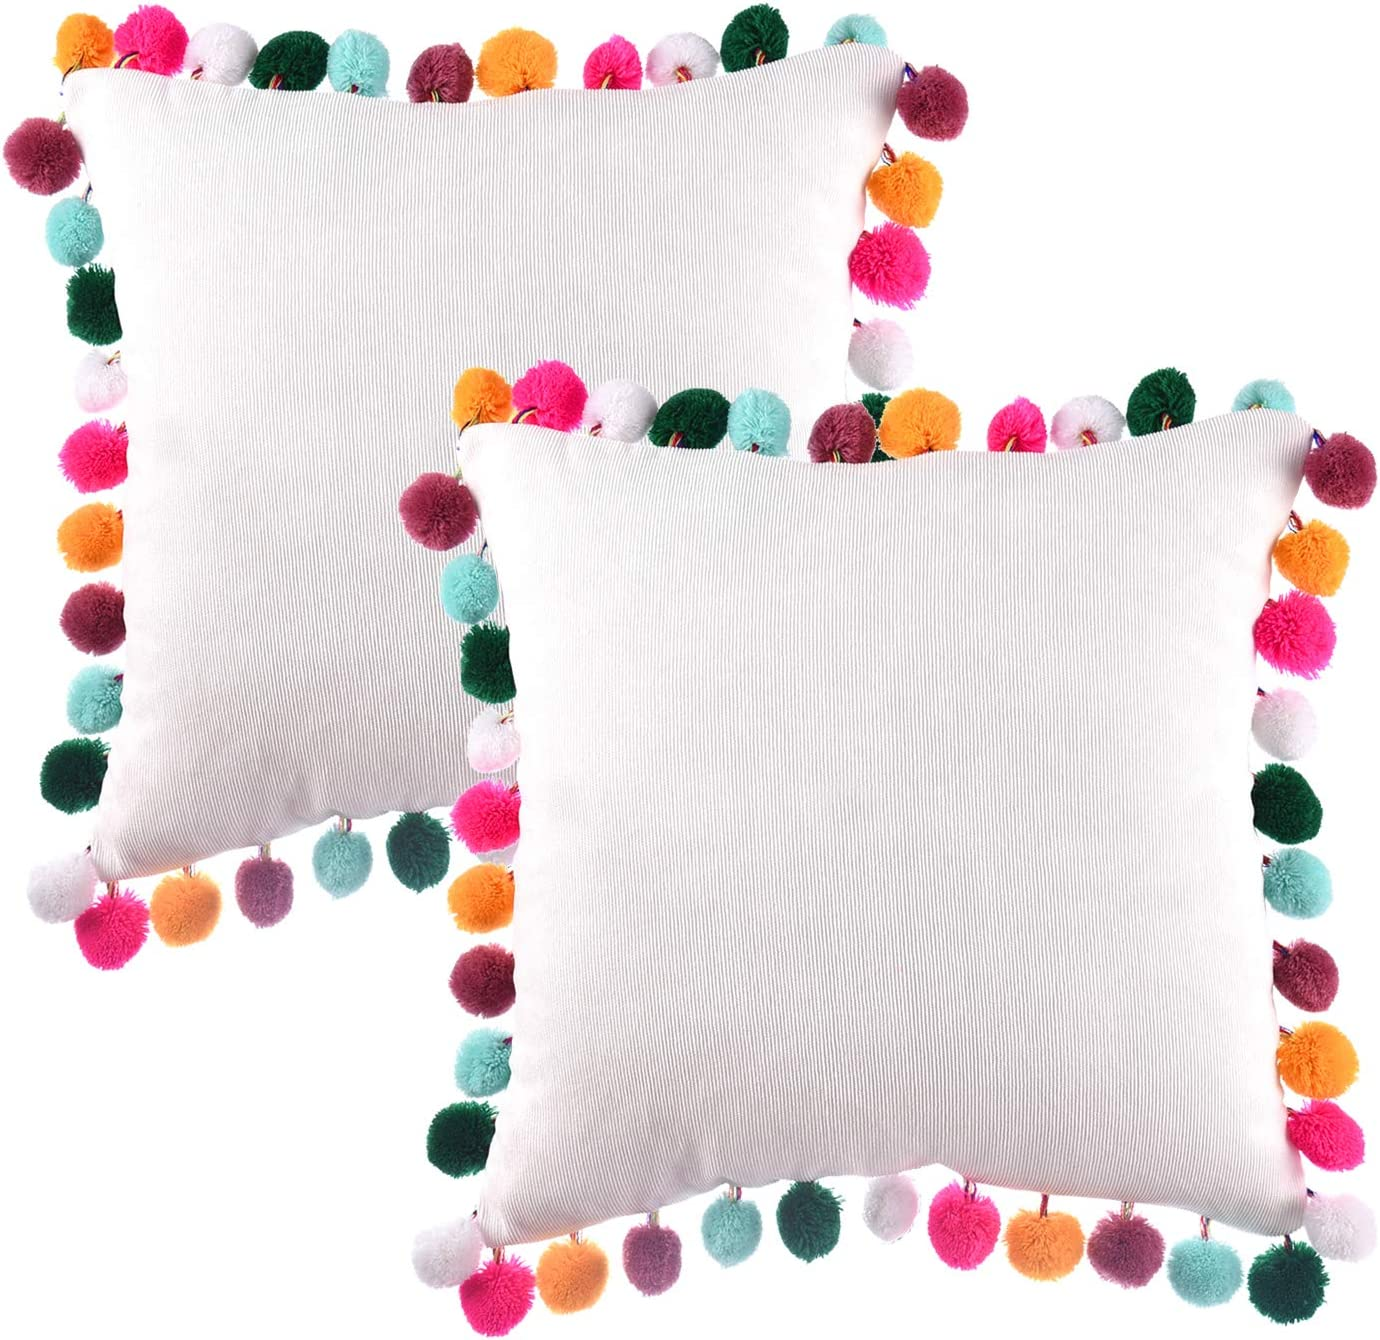 Amazon Com Rainbow Pom Poms Pillows White Throw Pillow Cover Cushion Pillow Case Decorative Corduroy Pillowcase For Couch Bed Sofa Home Car 16 X 16 Pack Of 2 Home Kitchen